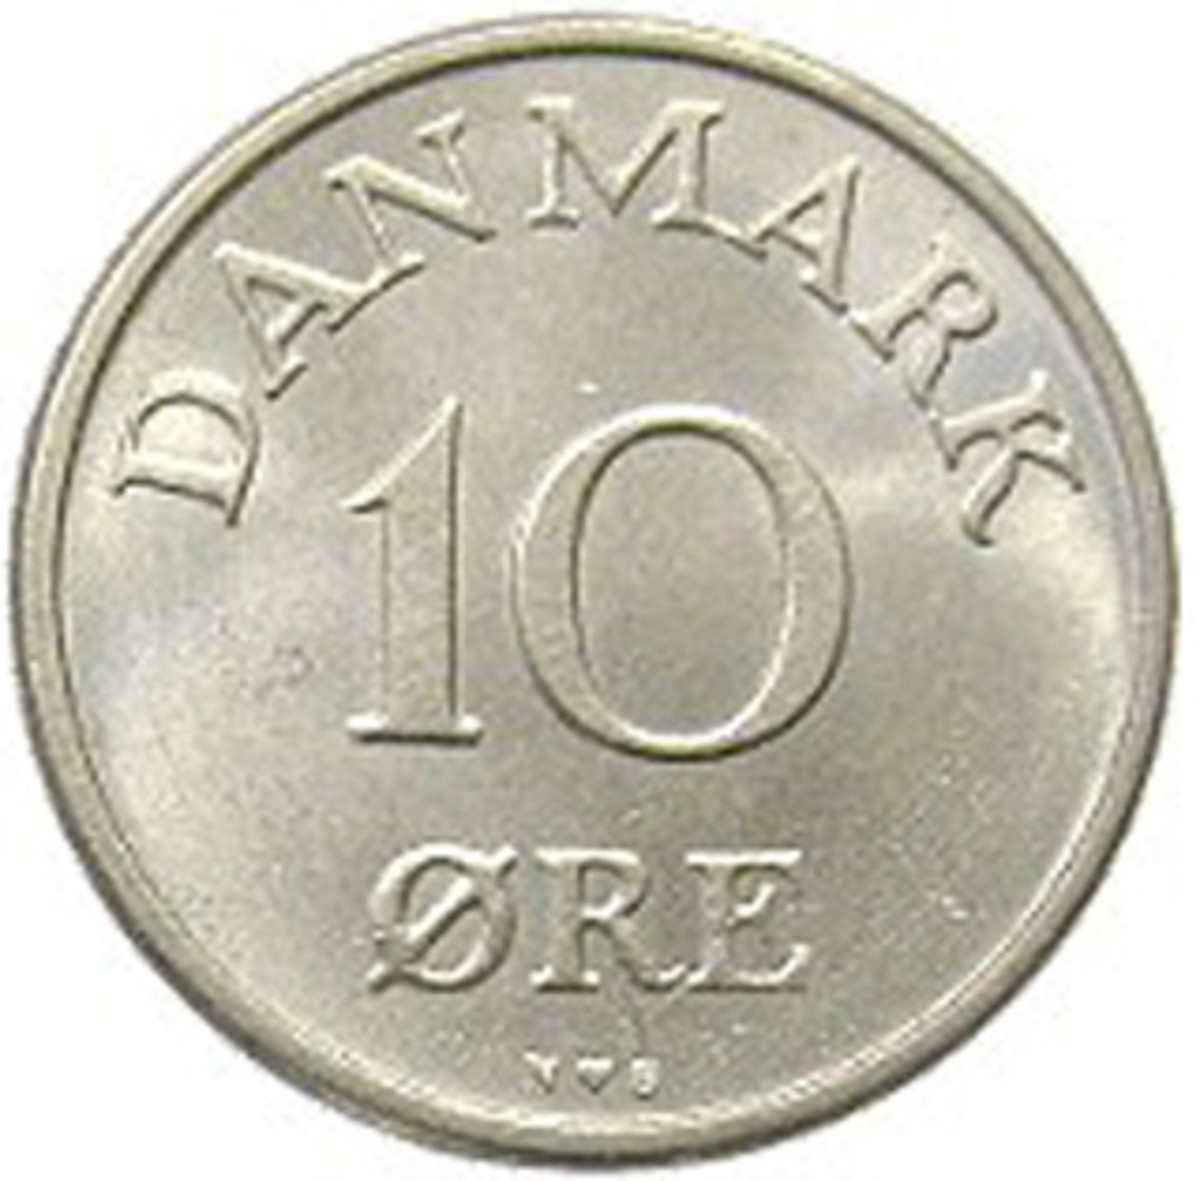 Denmark is moving to stop minting coins and producing bank notes.